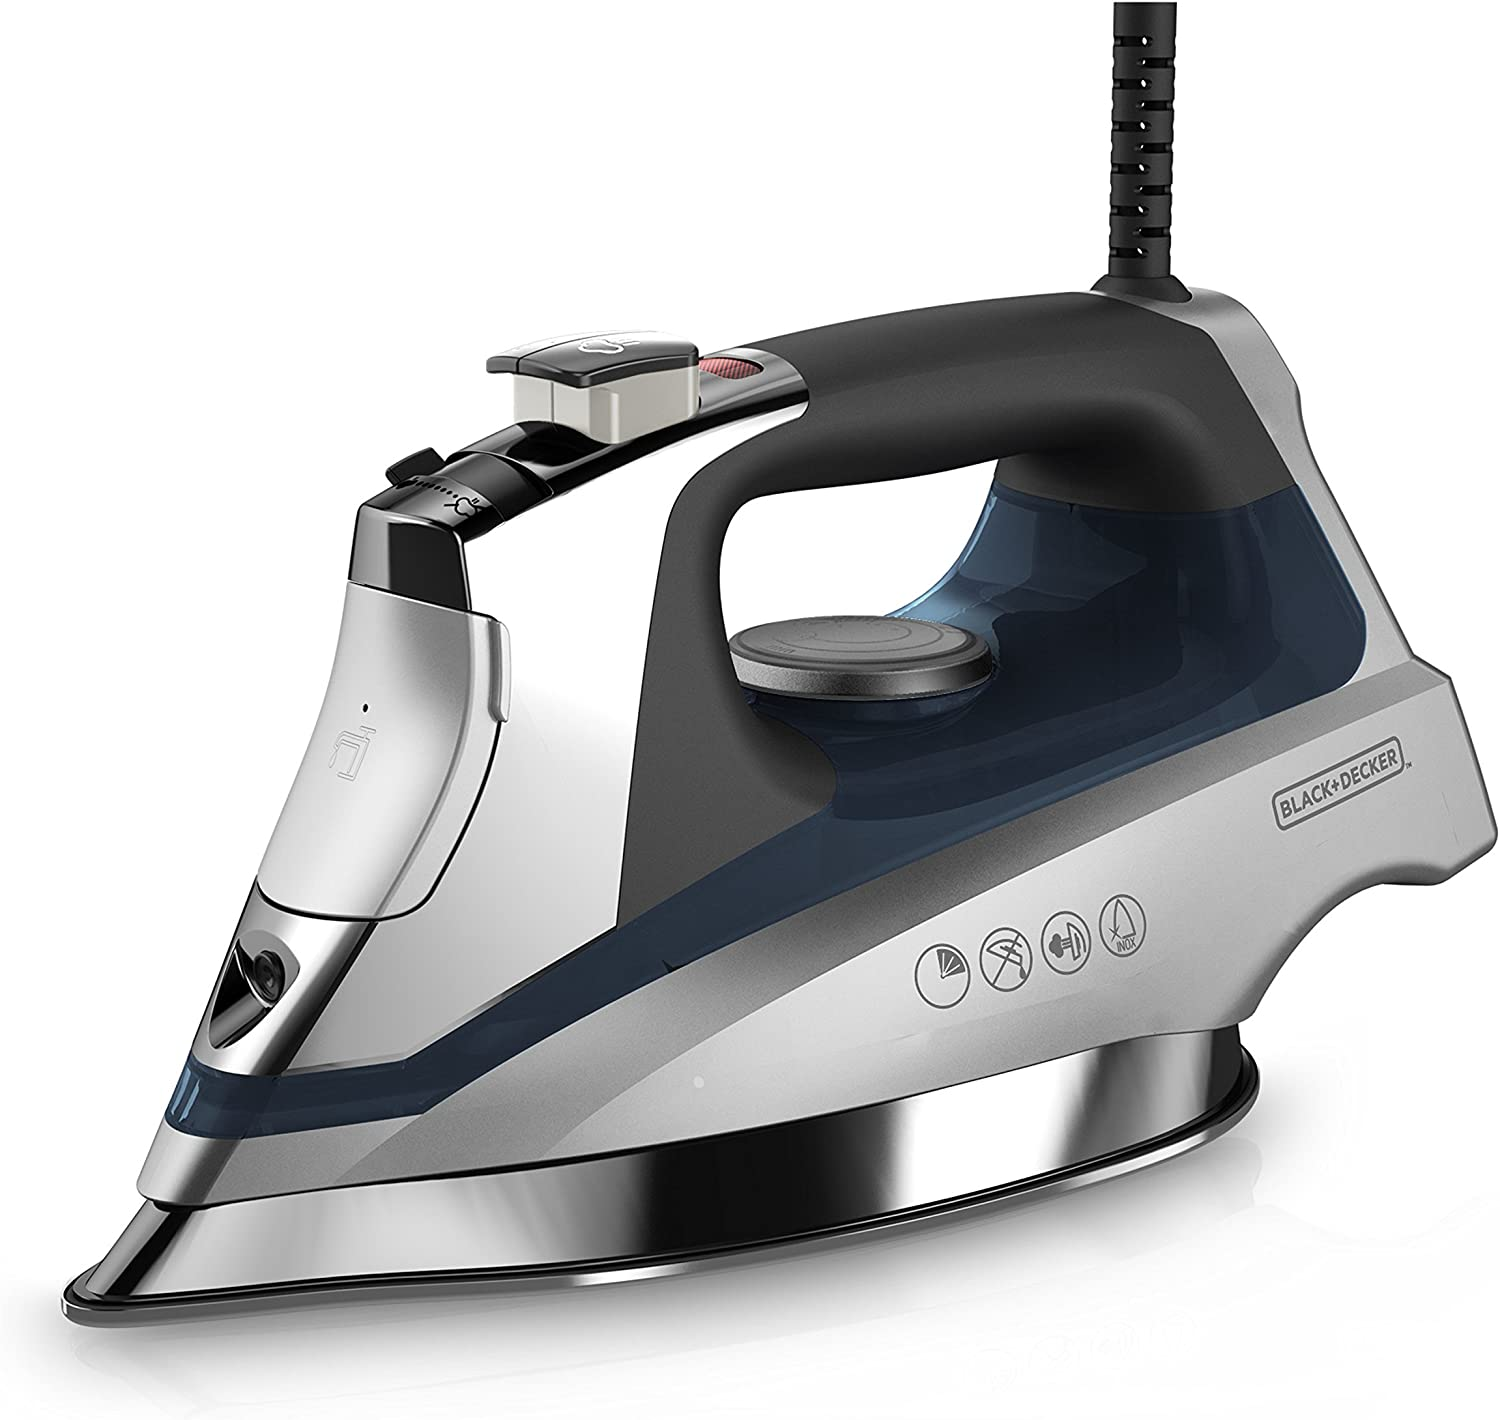 Best Professional: Black Decker Professional D3030 Steam Iron